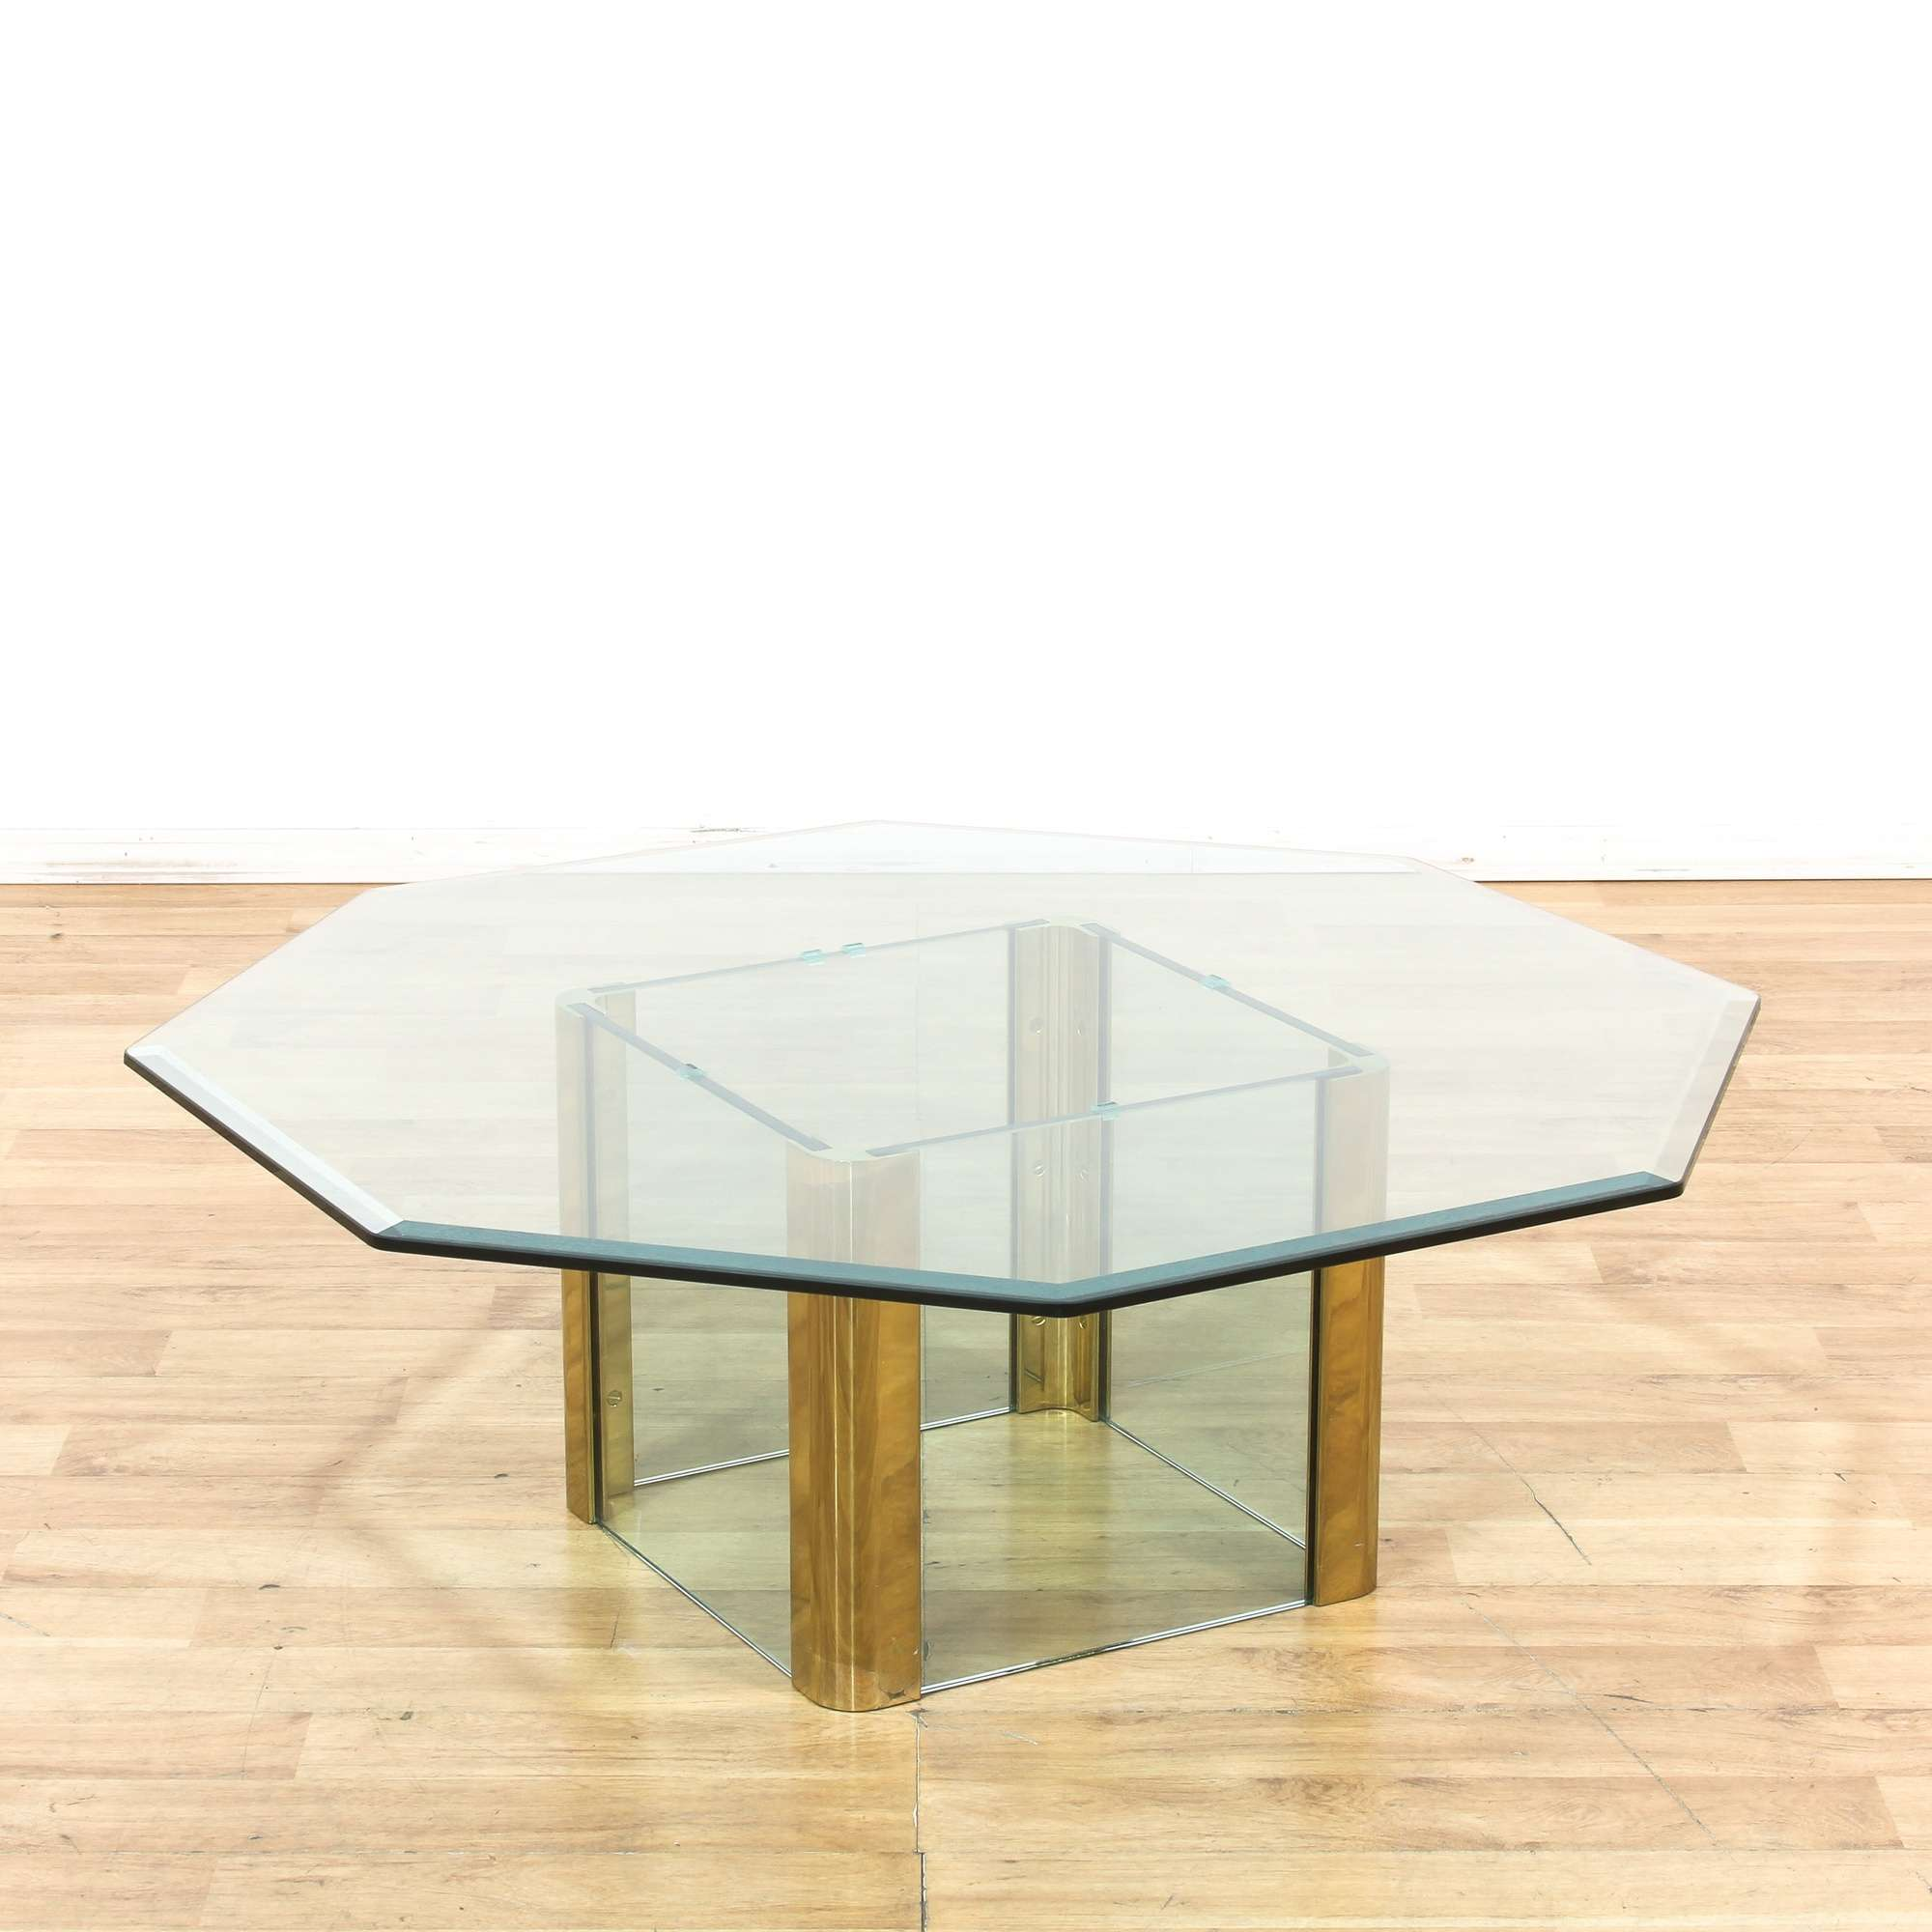 Octagonal Brass Glass Hollywood Regency Coffee Table - Loveseat Vintage